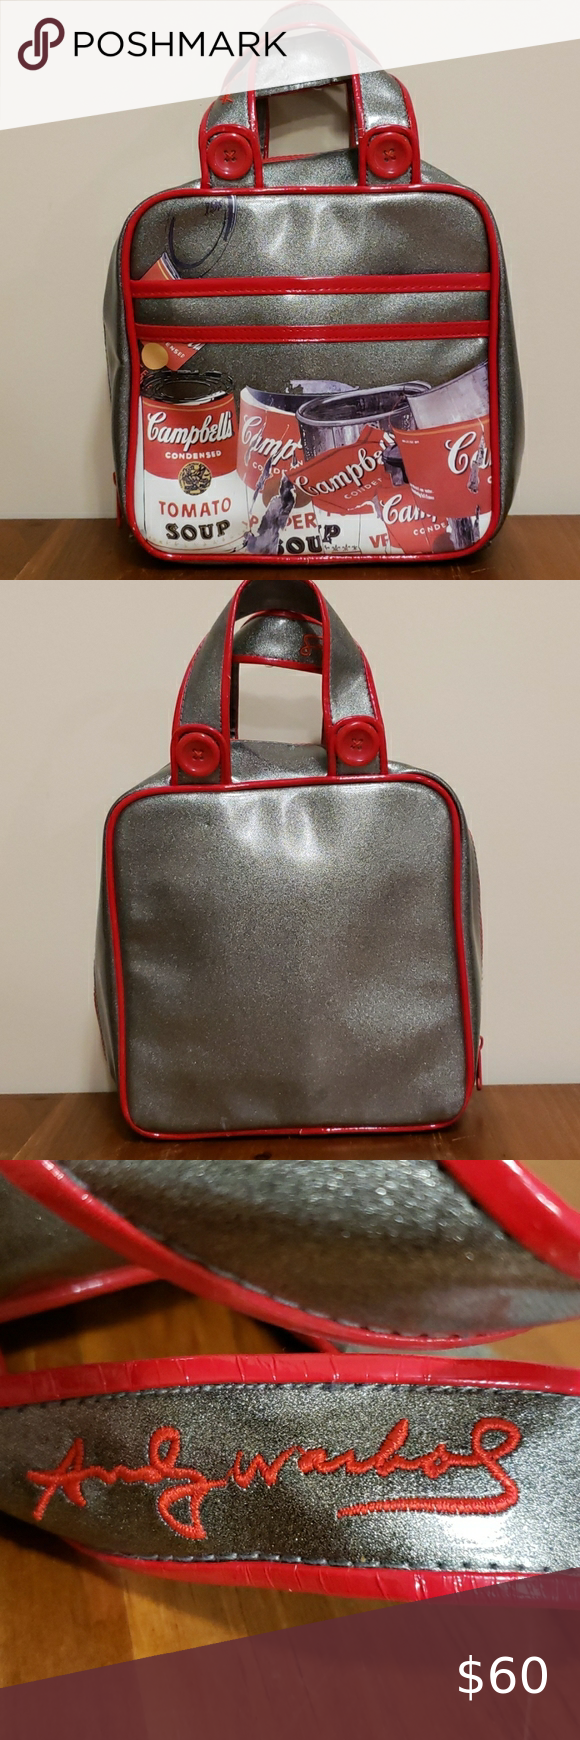 Loop Andy Warhol Campbell Soup Bag This Is A Metallic Silver Andy Warhol Campbell Soup Bag It Zips Fully And Has A Zipper P Womens Tote Bags Bags Unique Bags